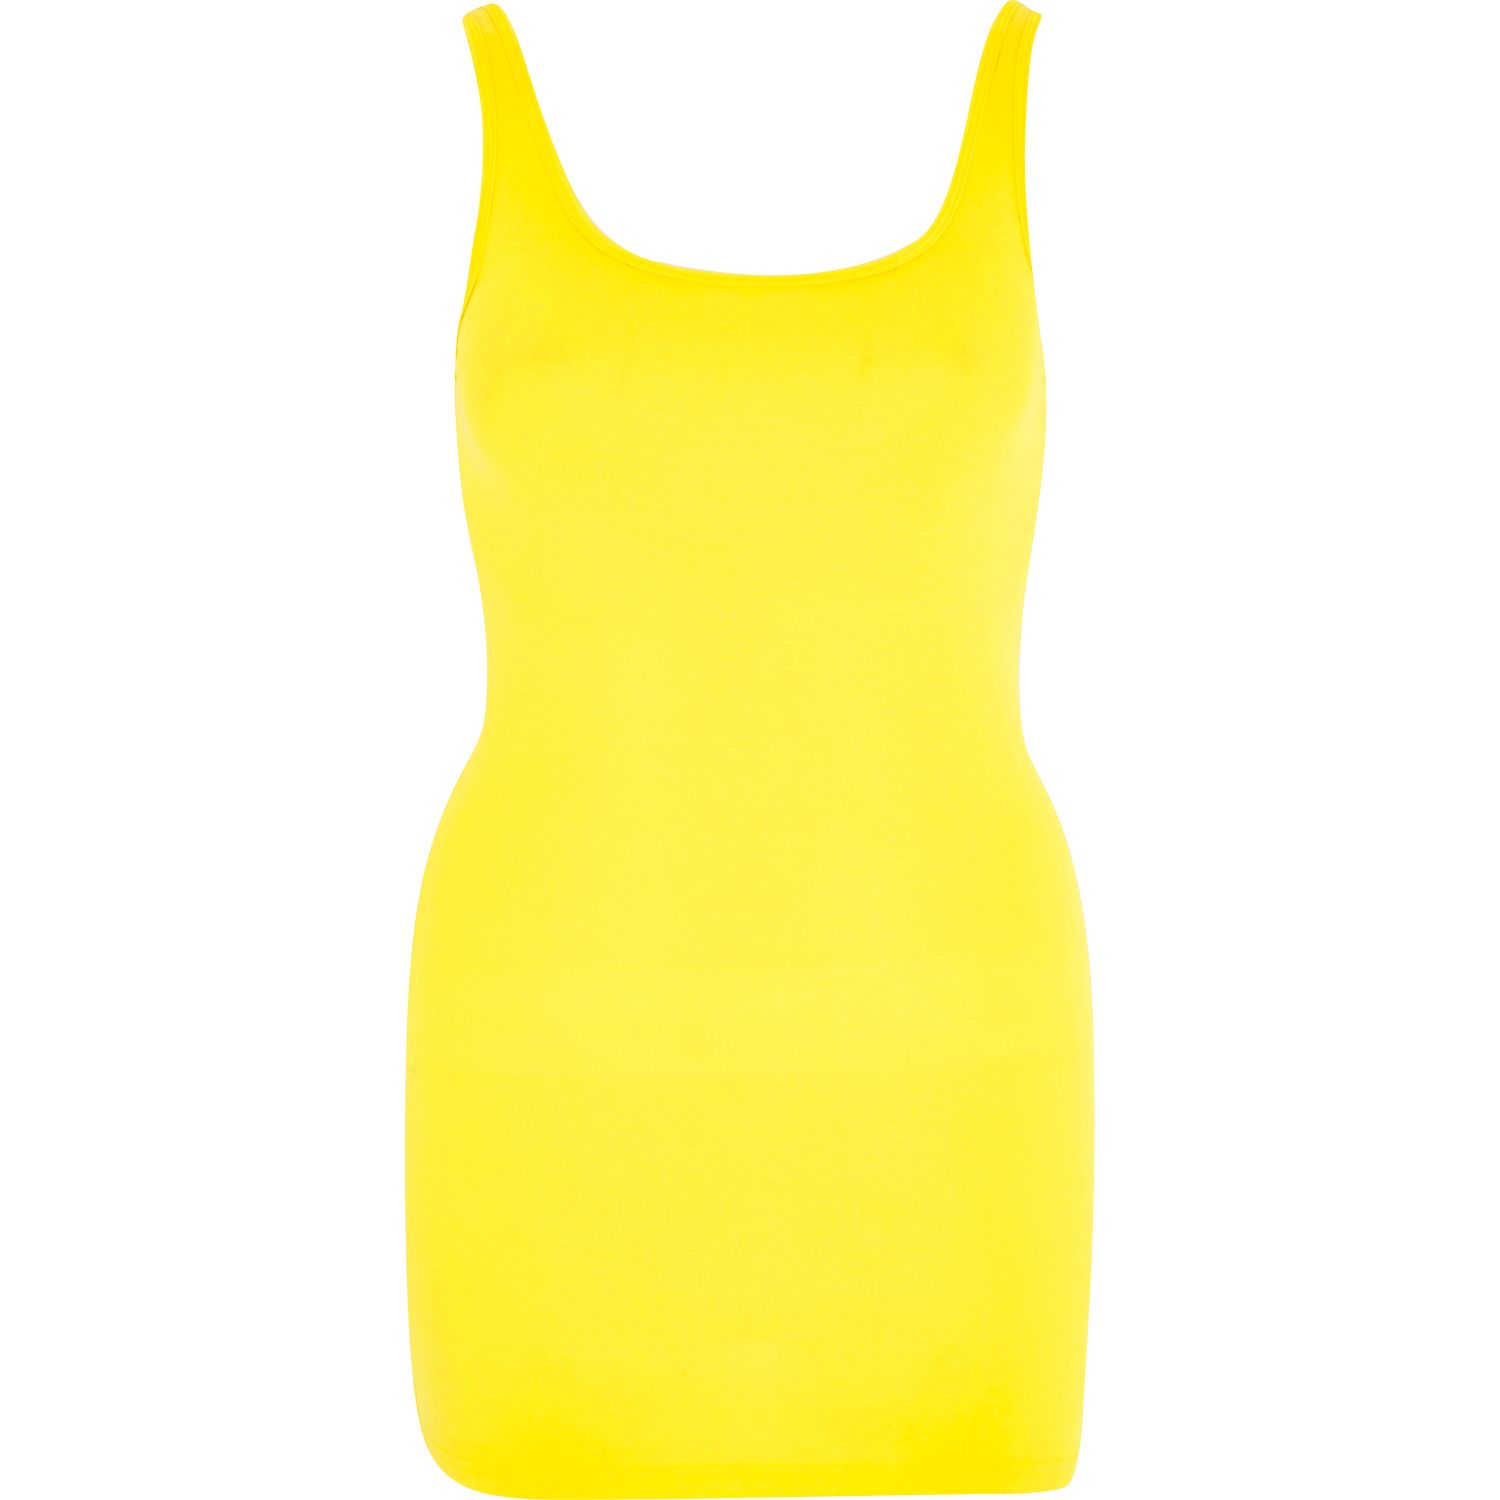 ac2eae1d79893 River Island Bright Yellow Scoop Neck Longline Vest Top in Yellow - Lyst